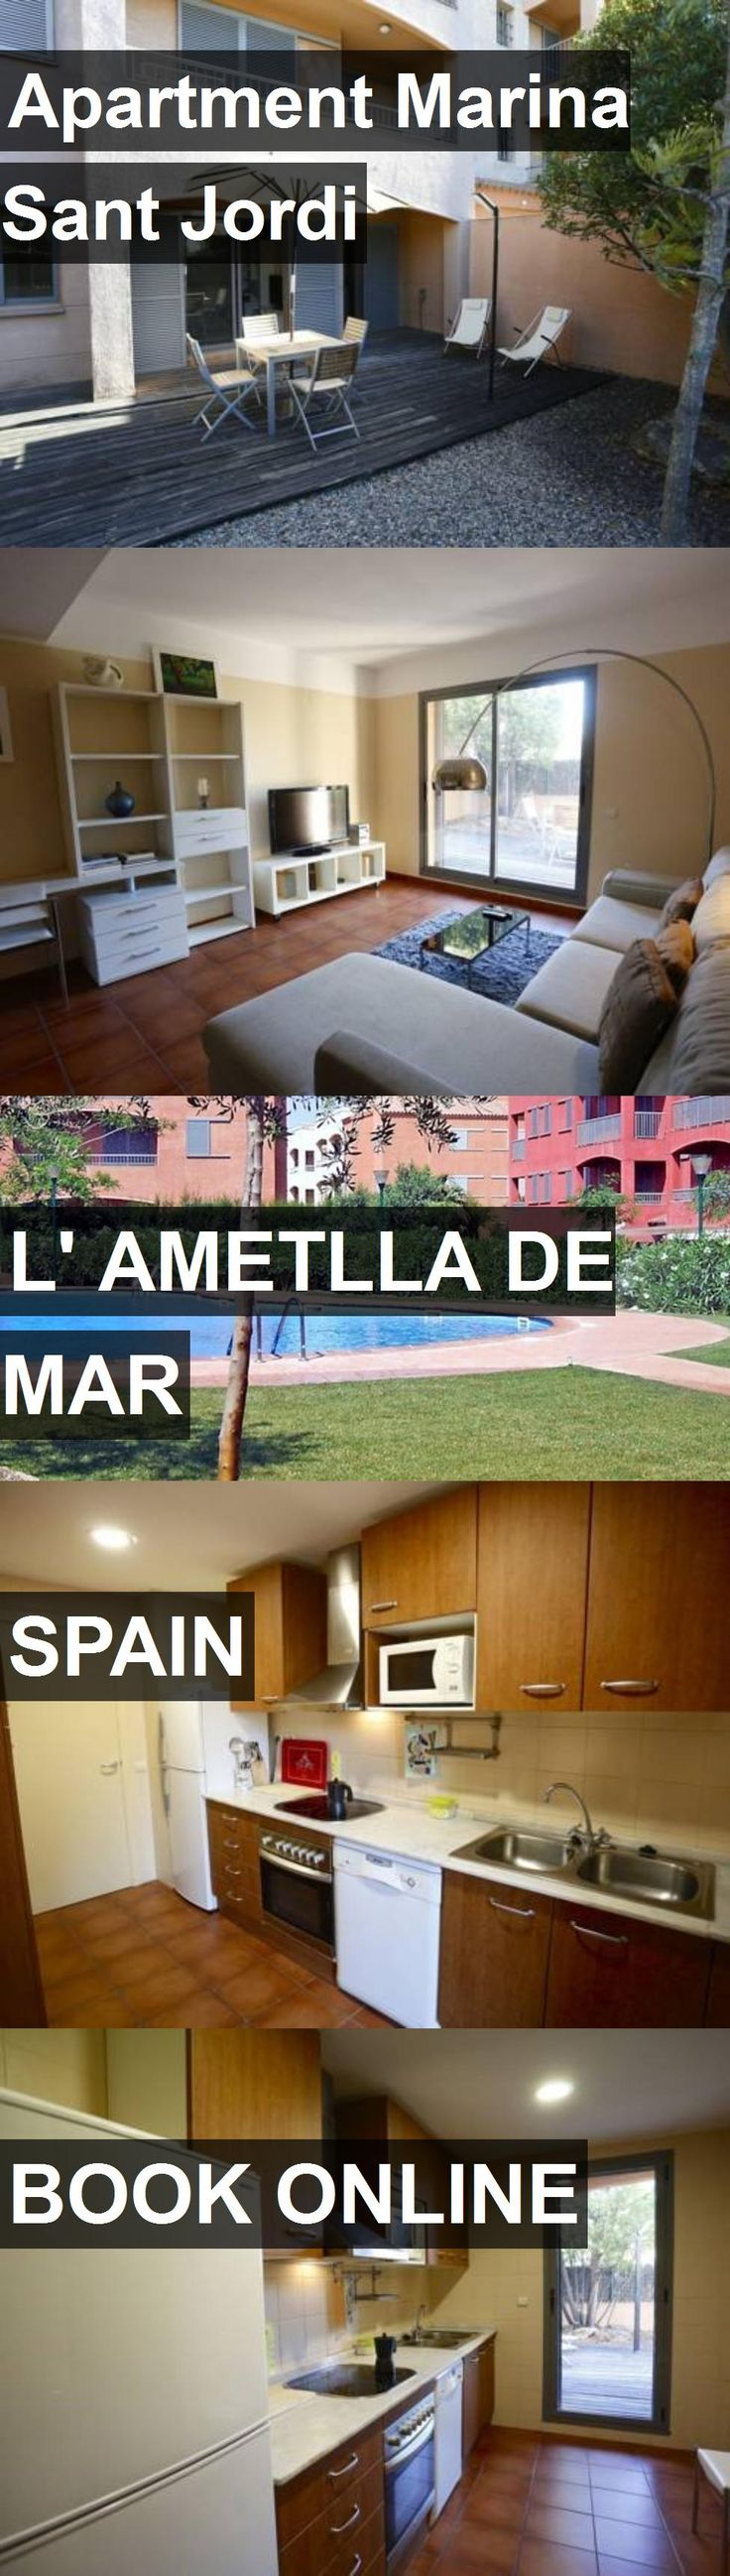 Apartment Marina Sant Jordi in l' Ametlla de Mar, Spain. For more information, photos, reviews and best prices please follow the link. #Spain #l'AmetlladeMar #travel #vacation #apartment